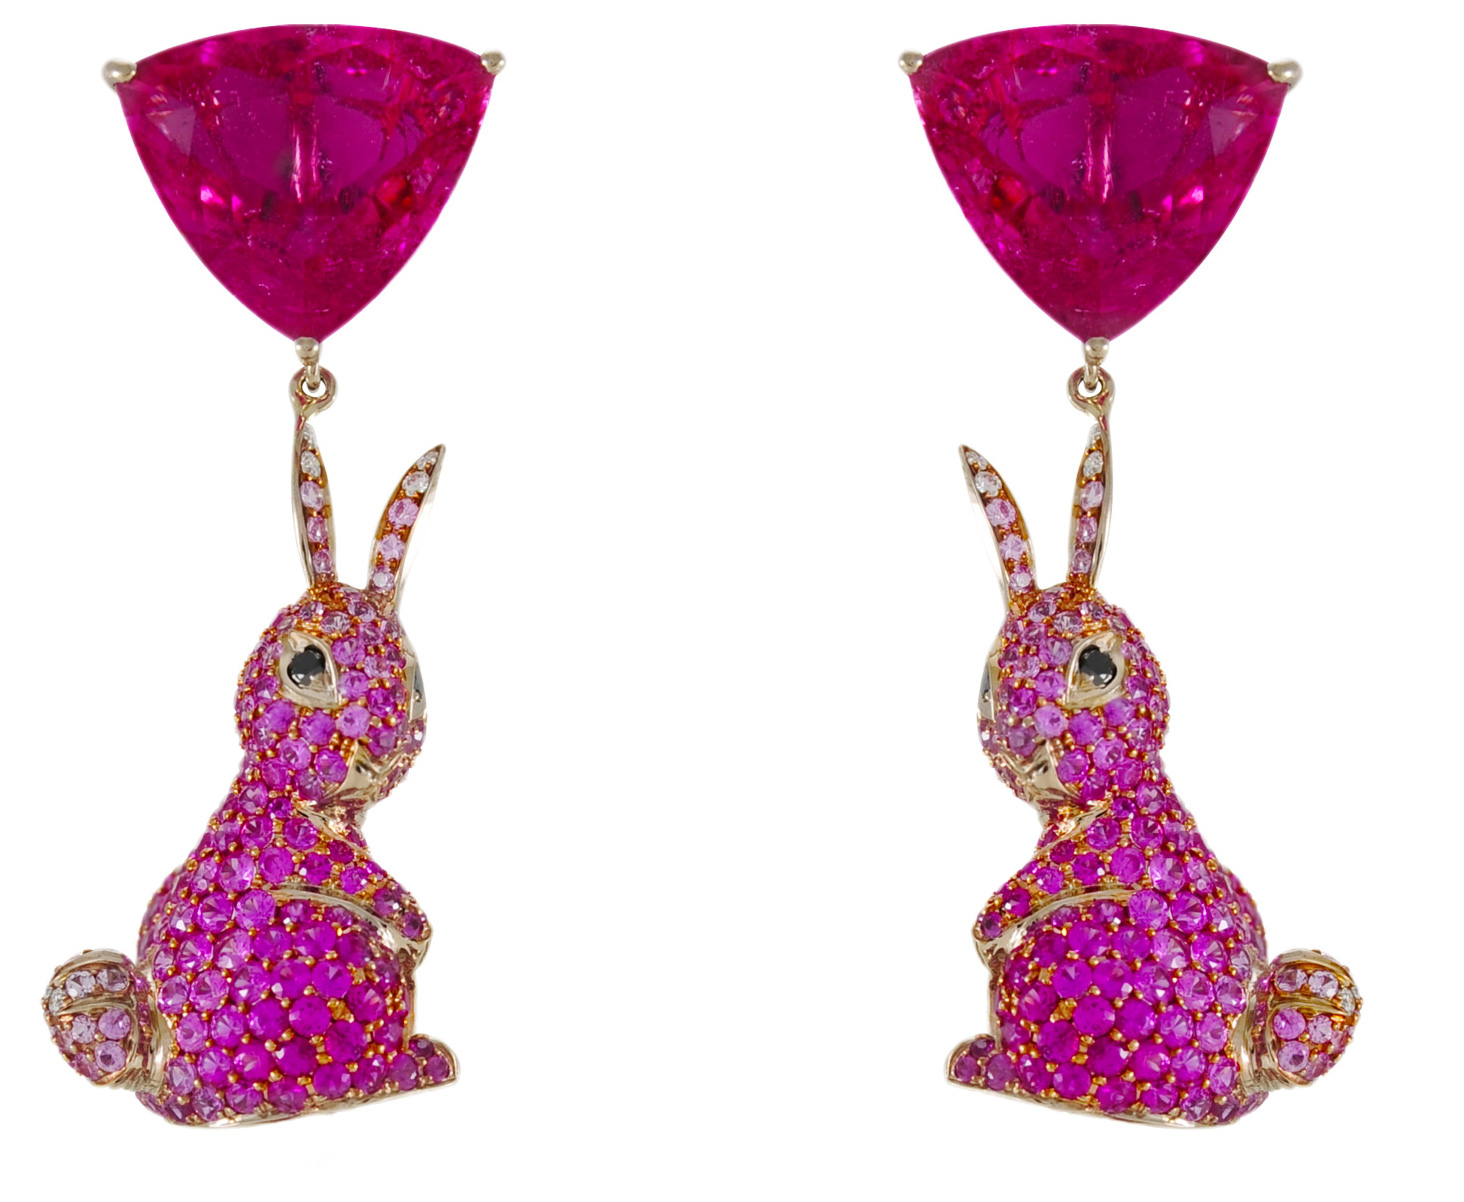 Lydia Courteille hot pink tourmaline bunny earrings | JCK On Your Market